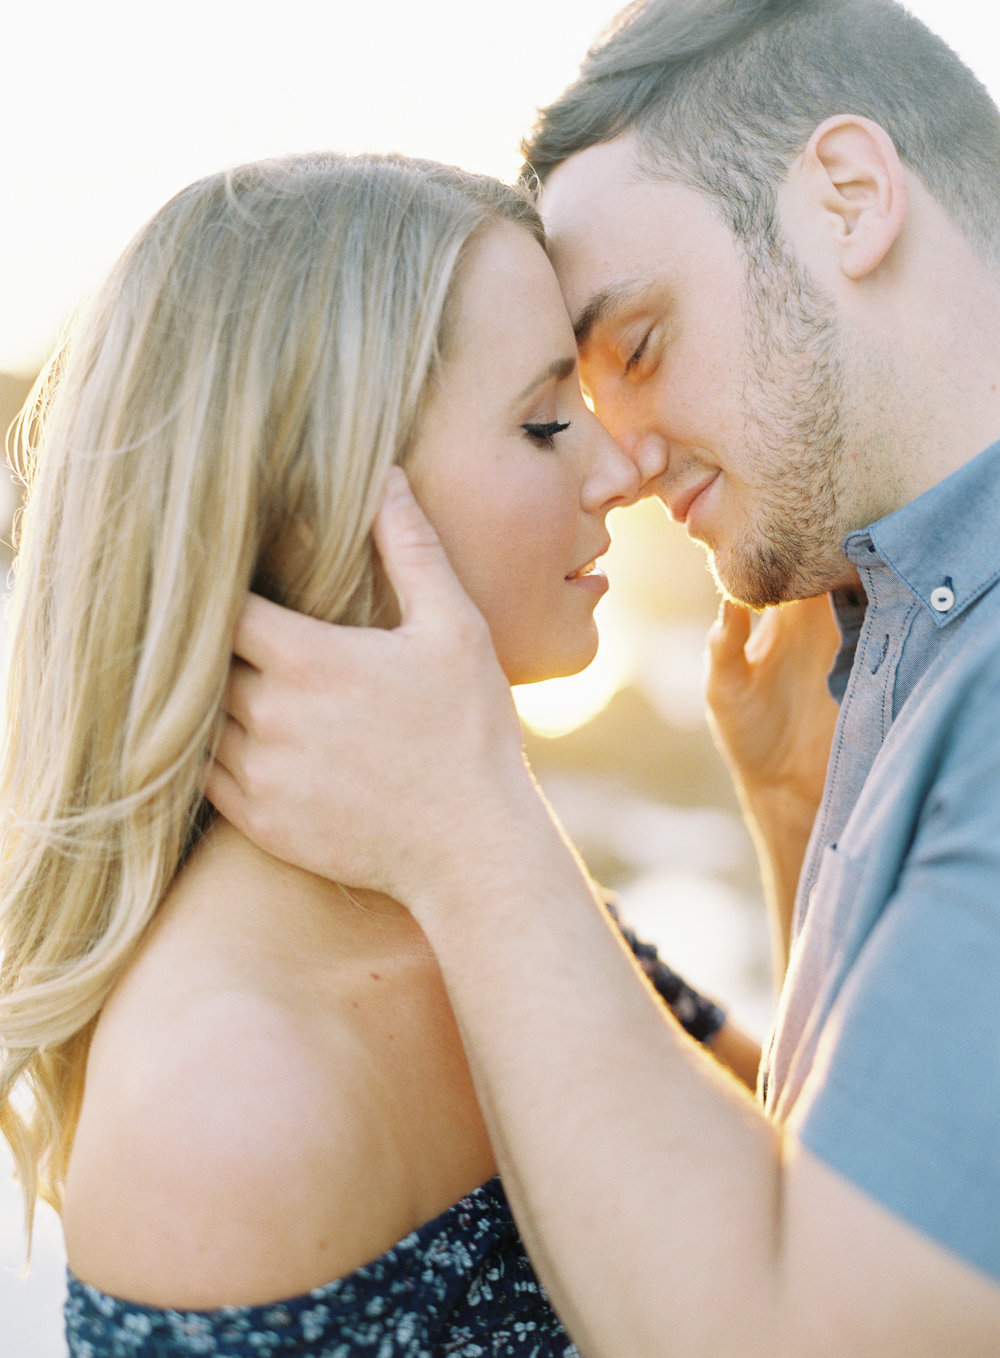 Taylor & Casey's Malibu Engagement-Carrie King Photographer-057.jpg